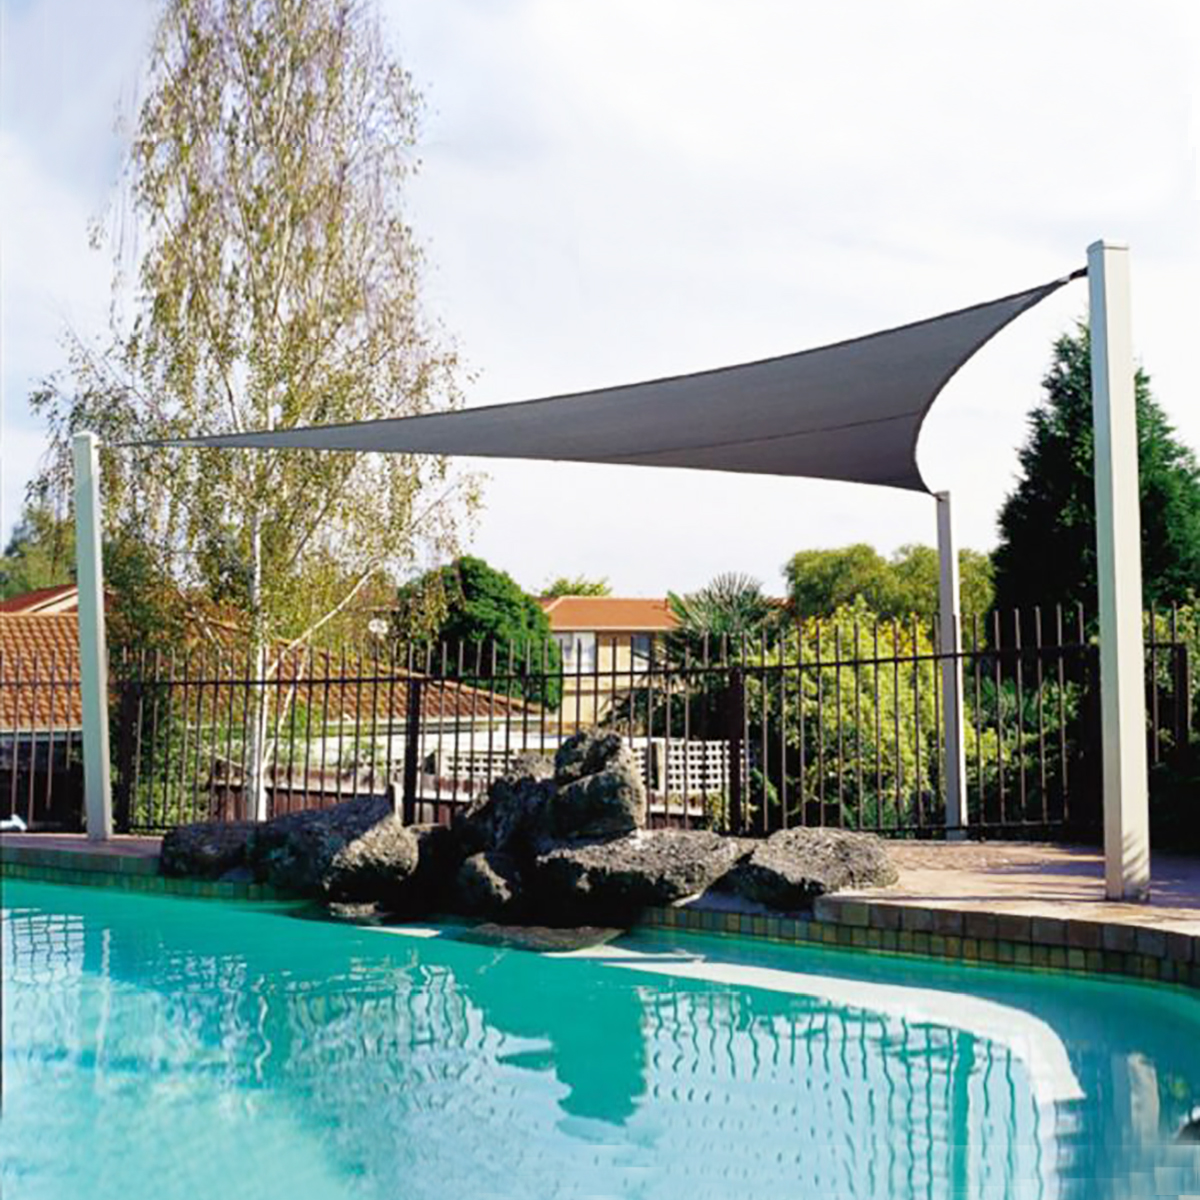 3.6M/5M Triangle Sun Shade Sail Outdoor Garden Patio UV Proof Awning Canopy Screen Cover